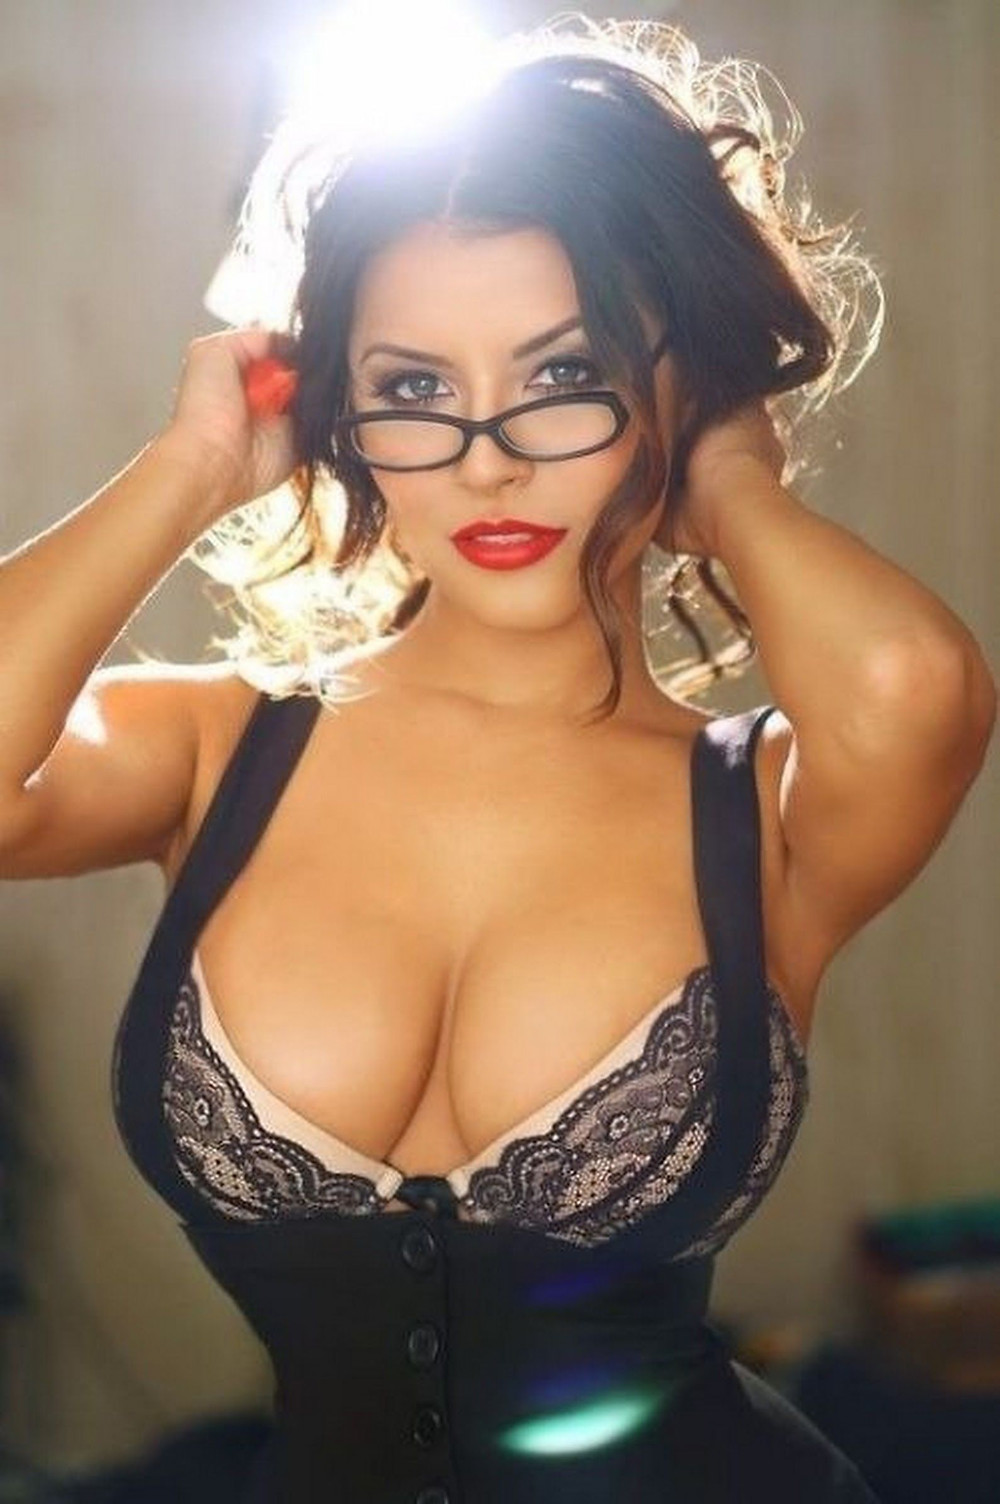 What is Sexy: Girls in Glasses